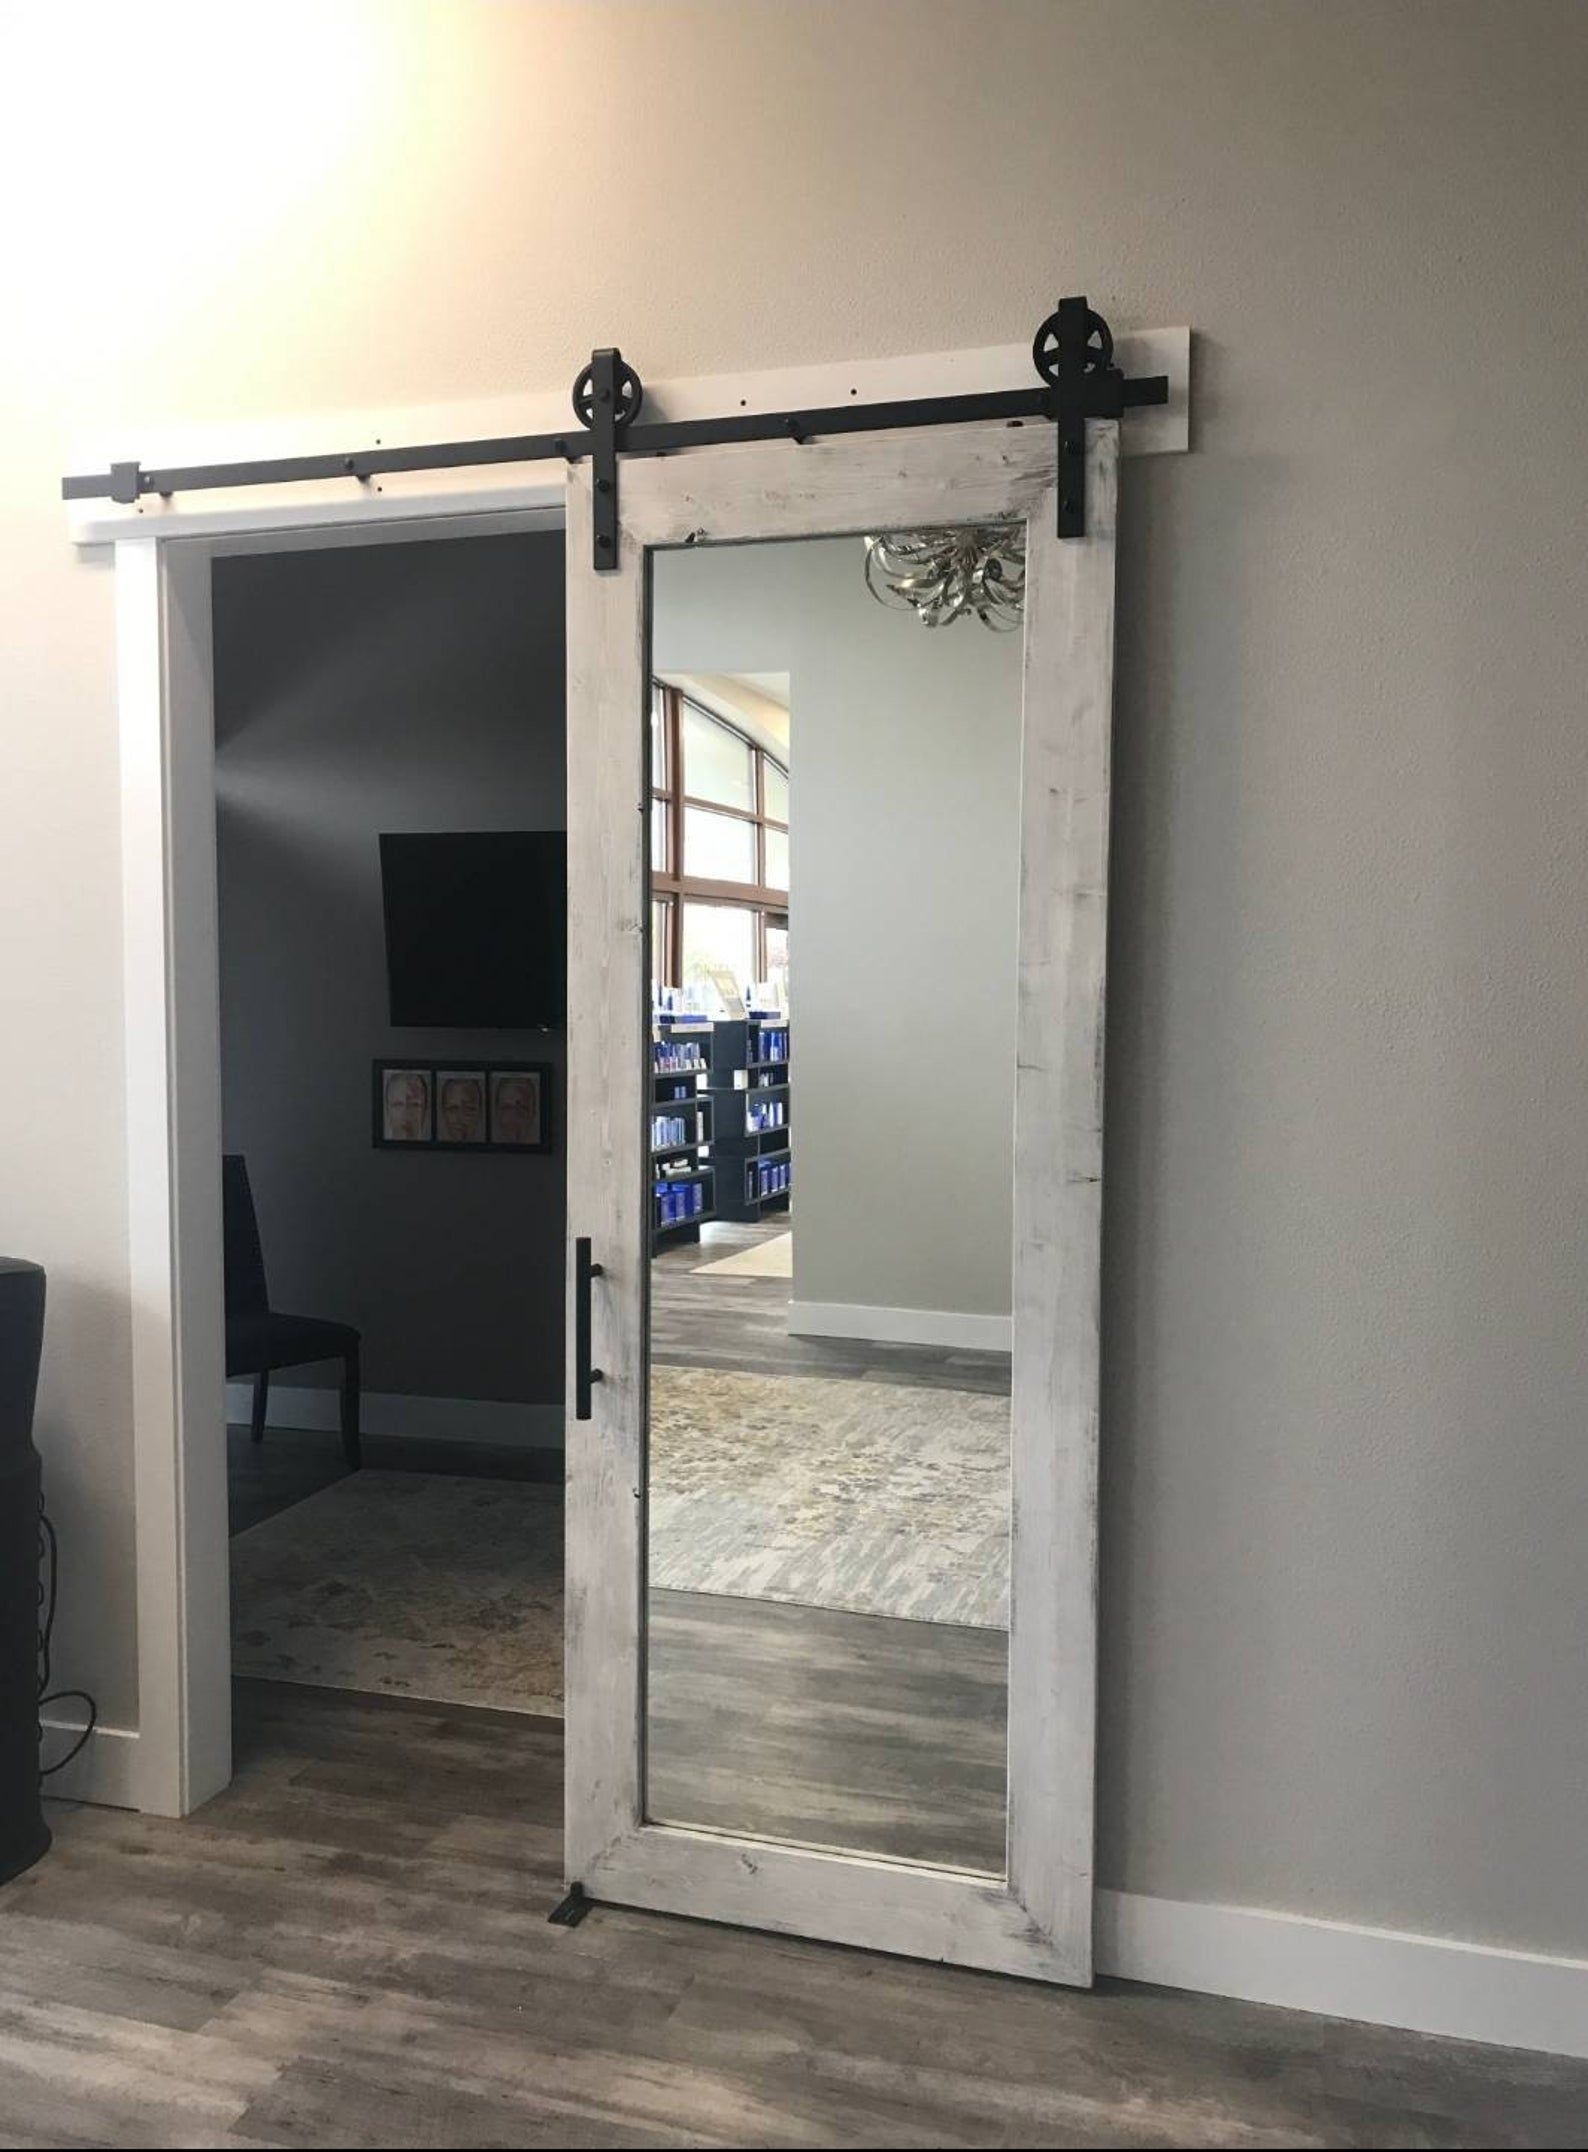 Distressed White Rustic Mirrored Sliding Barn Door 36 X 96 In 2020 Sliding Bathroom Doors Bathroom Barn Door Barn Door